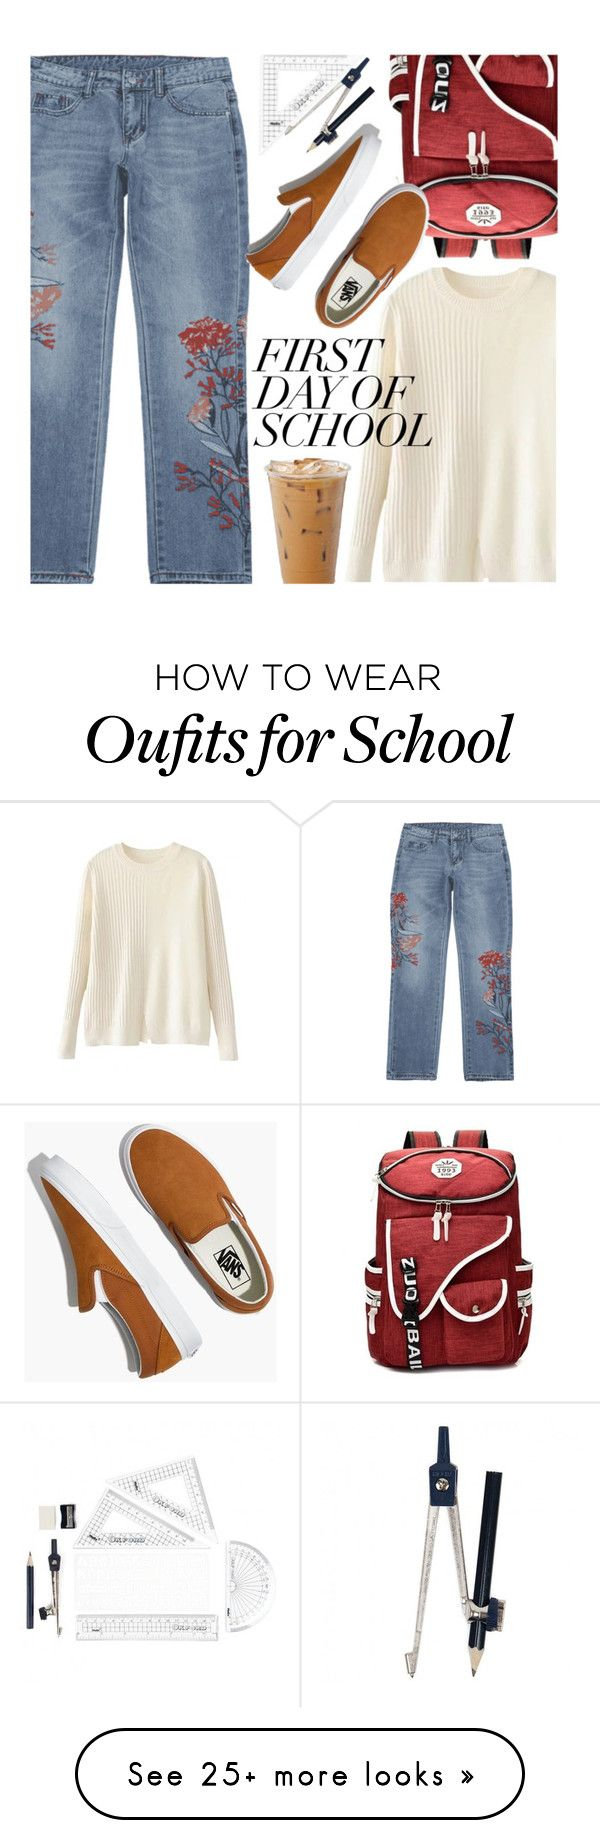 """Campus Chic: First Day of School"" by zaful on Polyvore featuring Madewell"